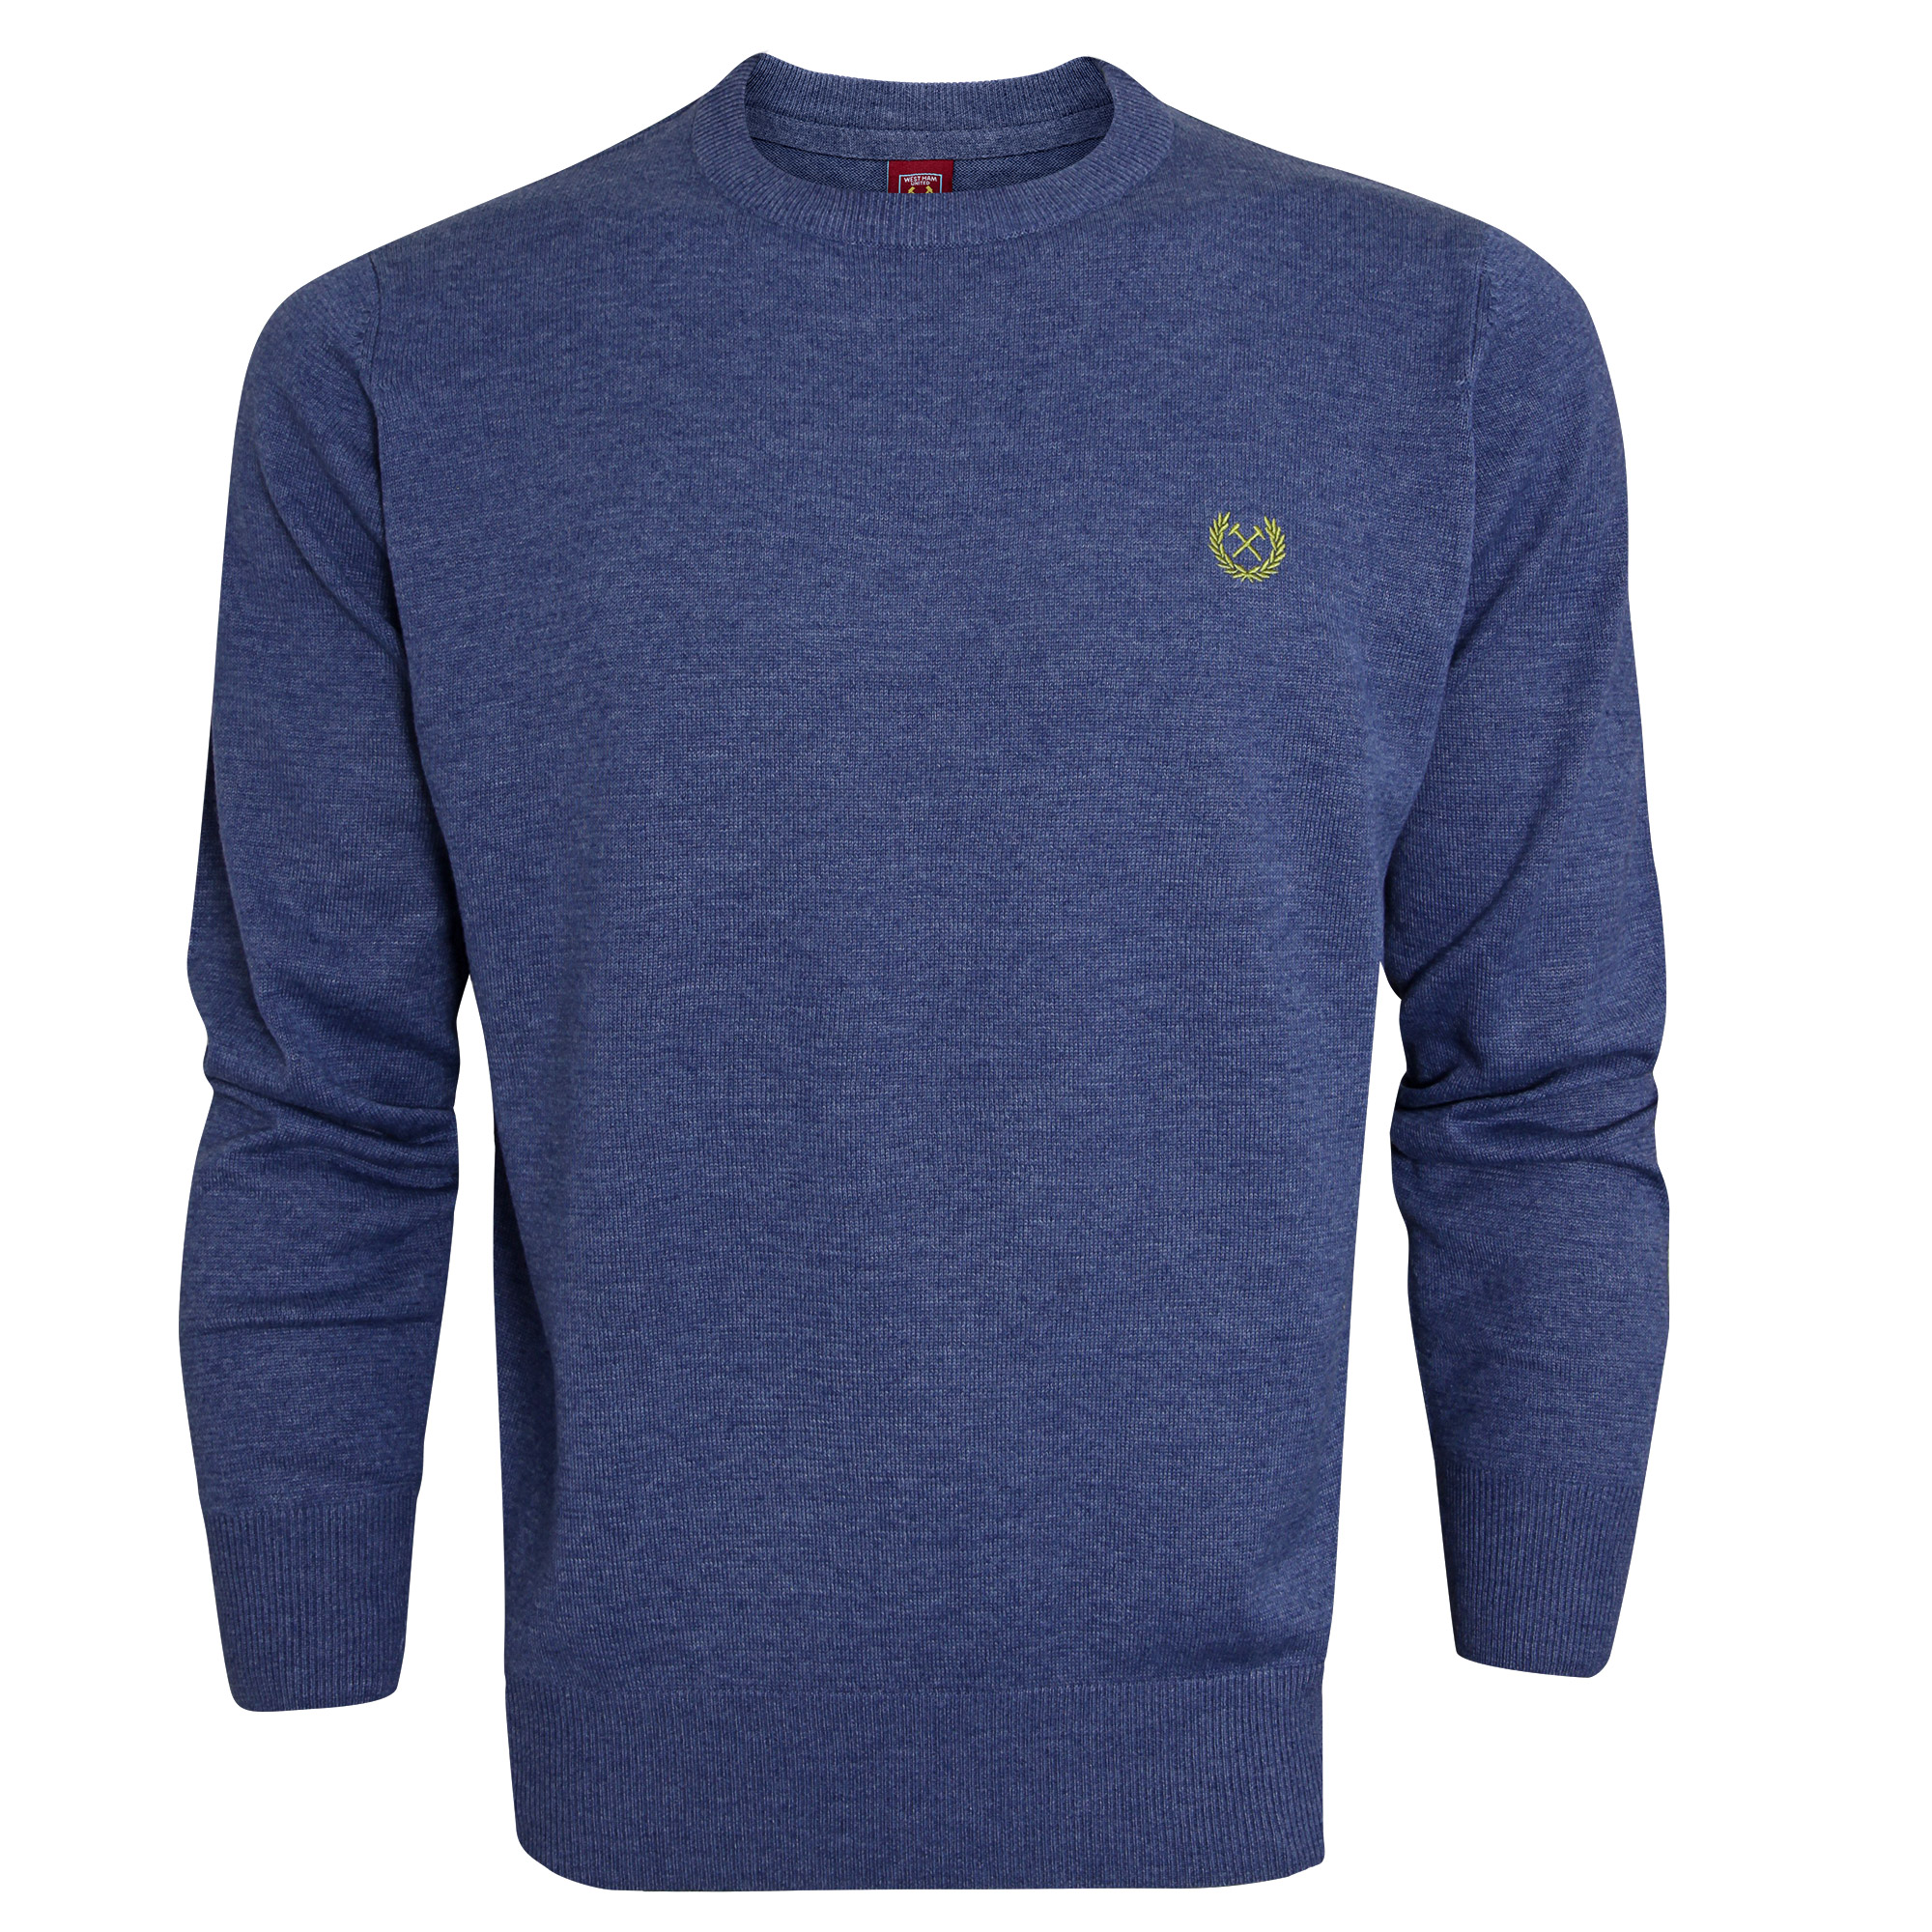 BLUE MARL JUMPER